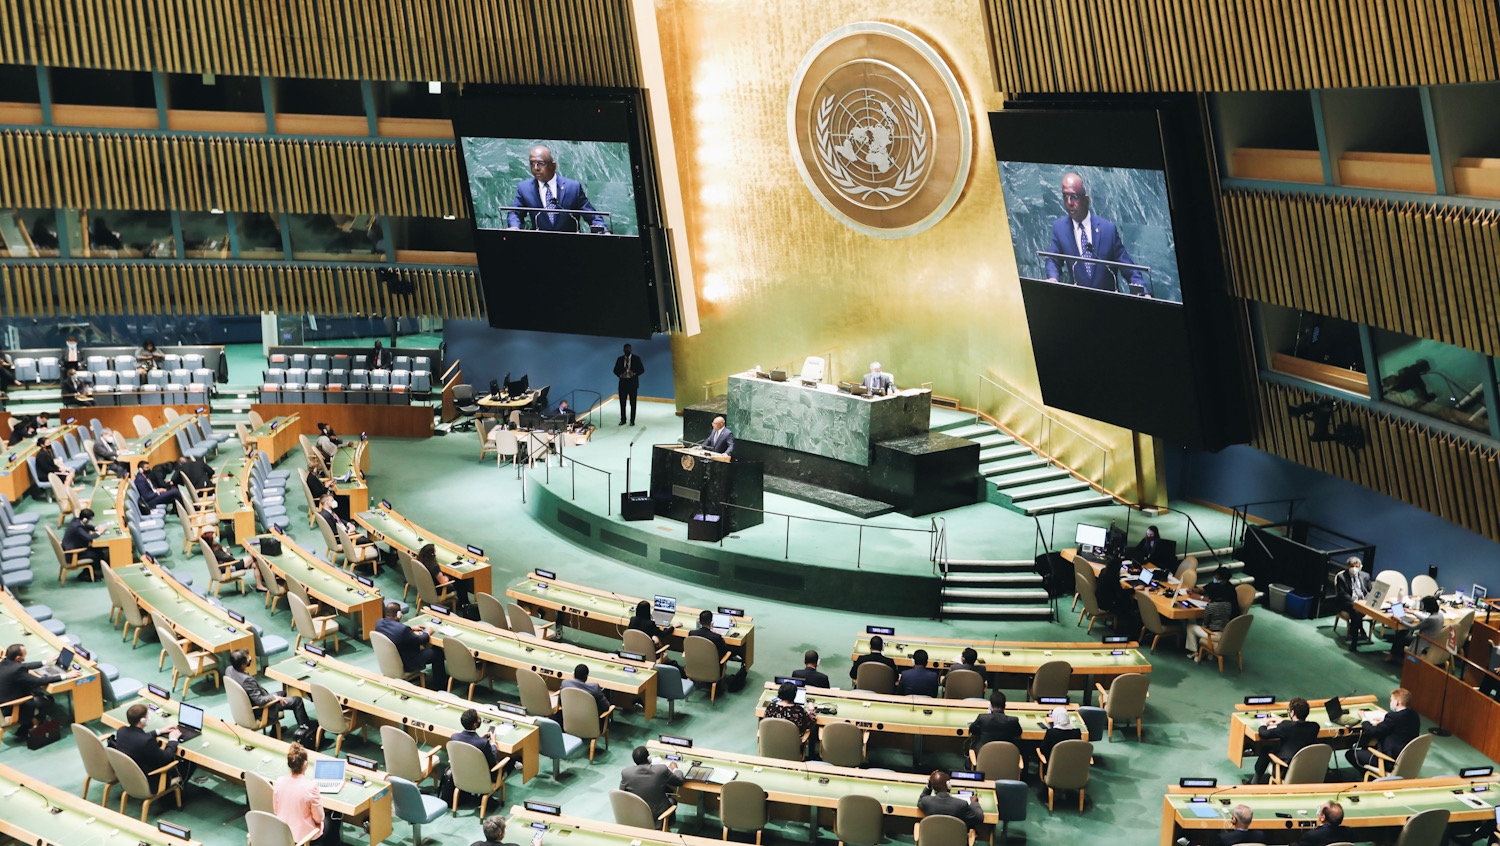 Photo shows incoming UN General Assembly President Abdulla Shahid of the Maldives addressing the event's attendees in New York.